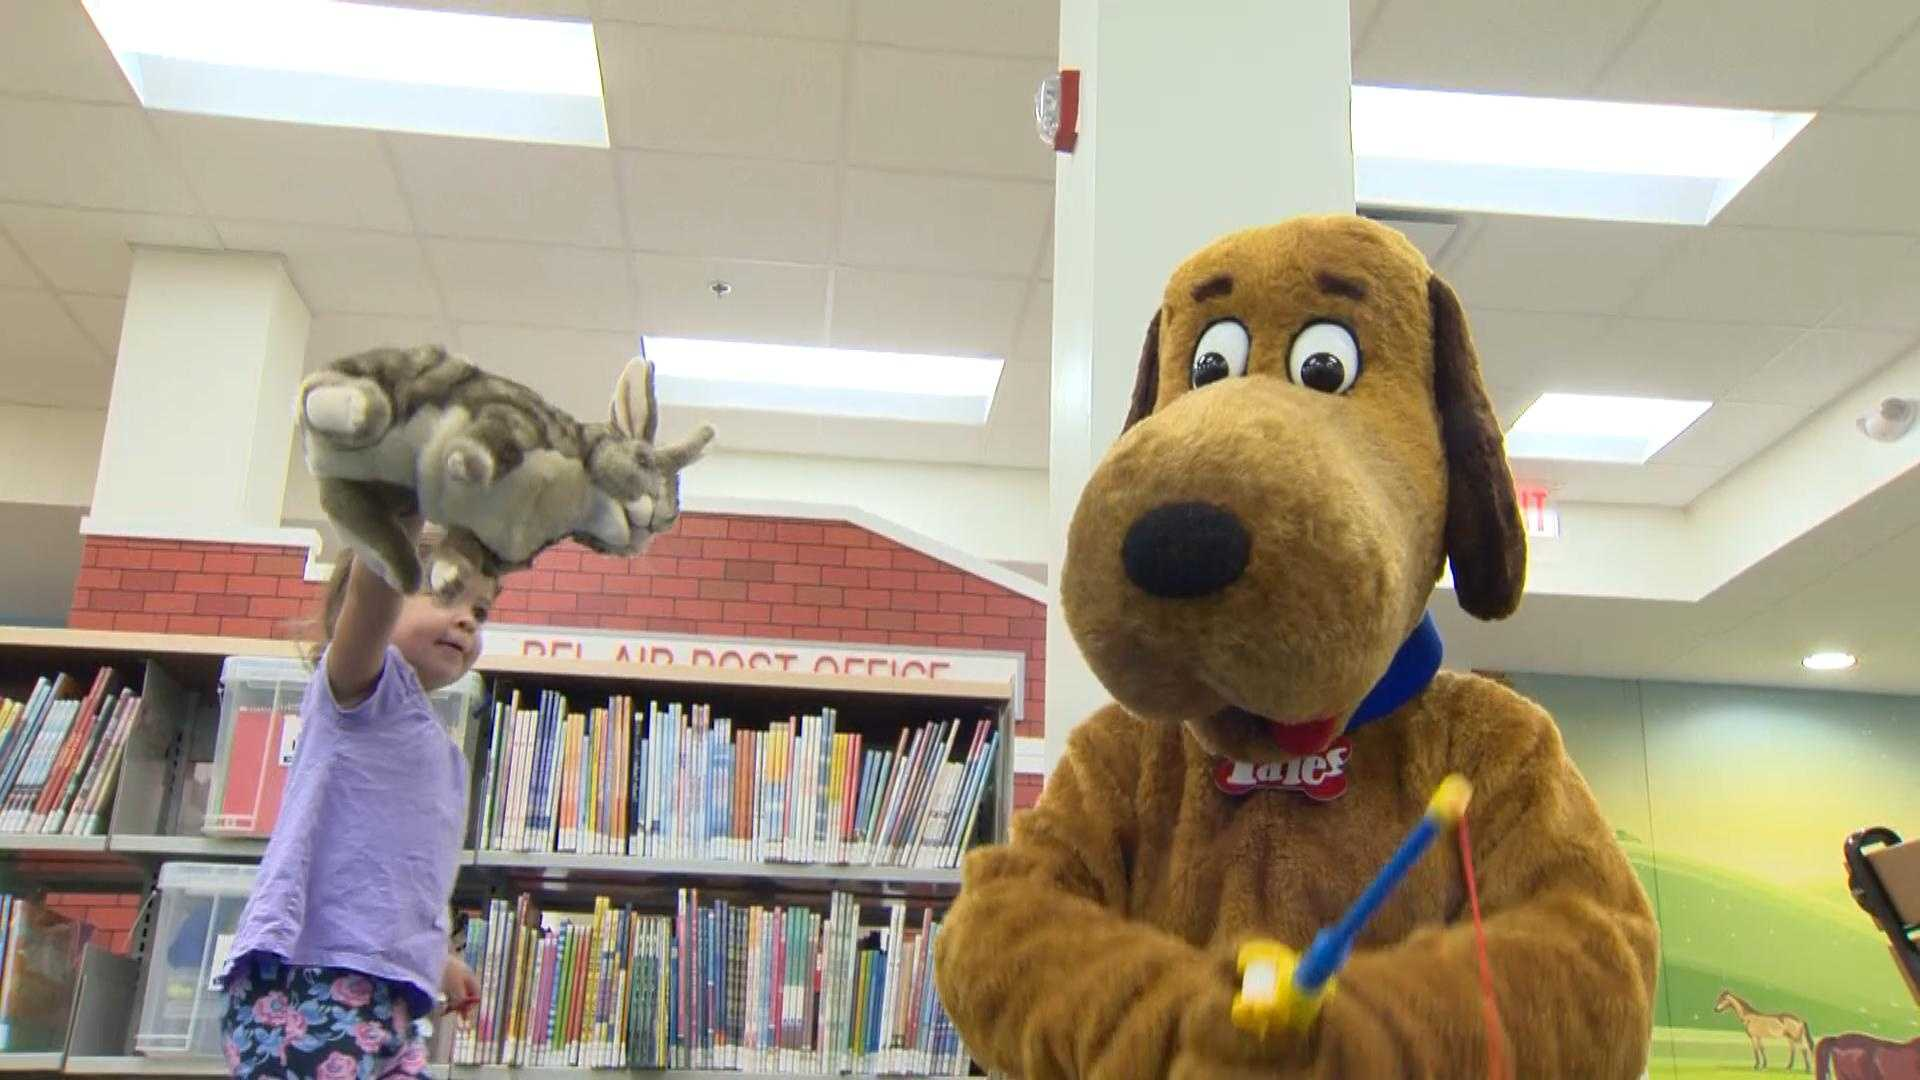 It has been closed for months, but Thursday morning the library in Bel Air re-opened its new children's department.